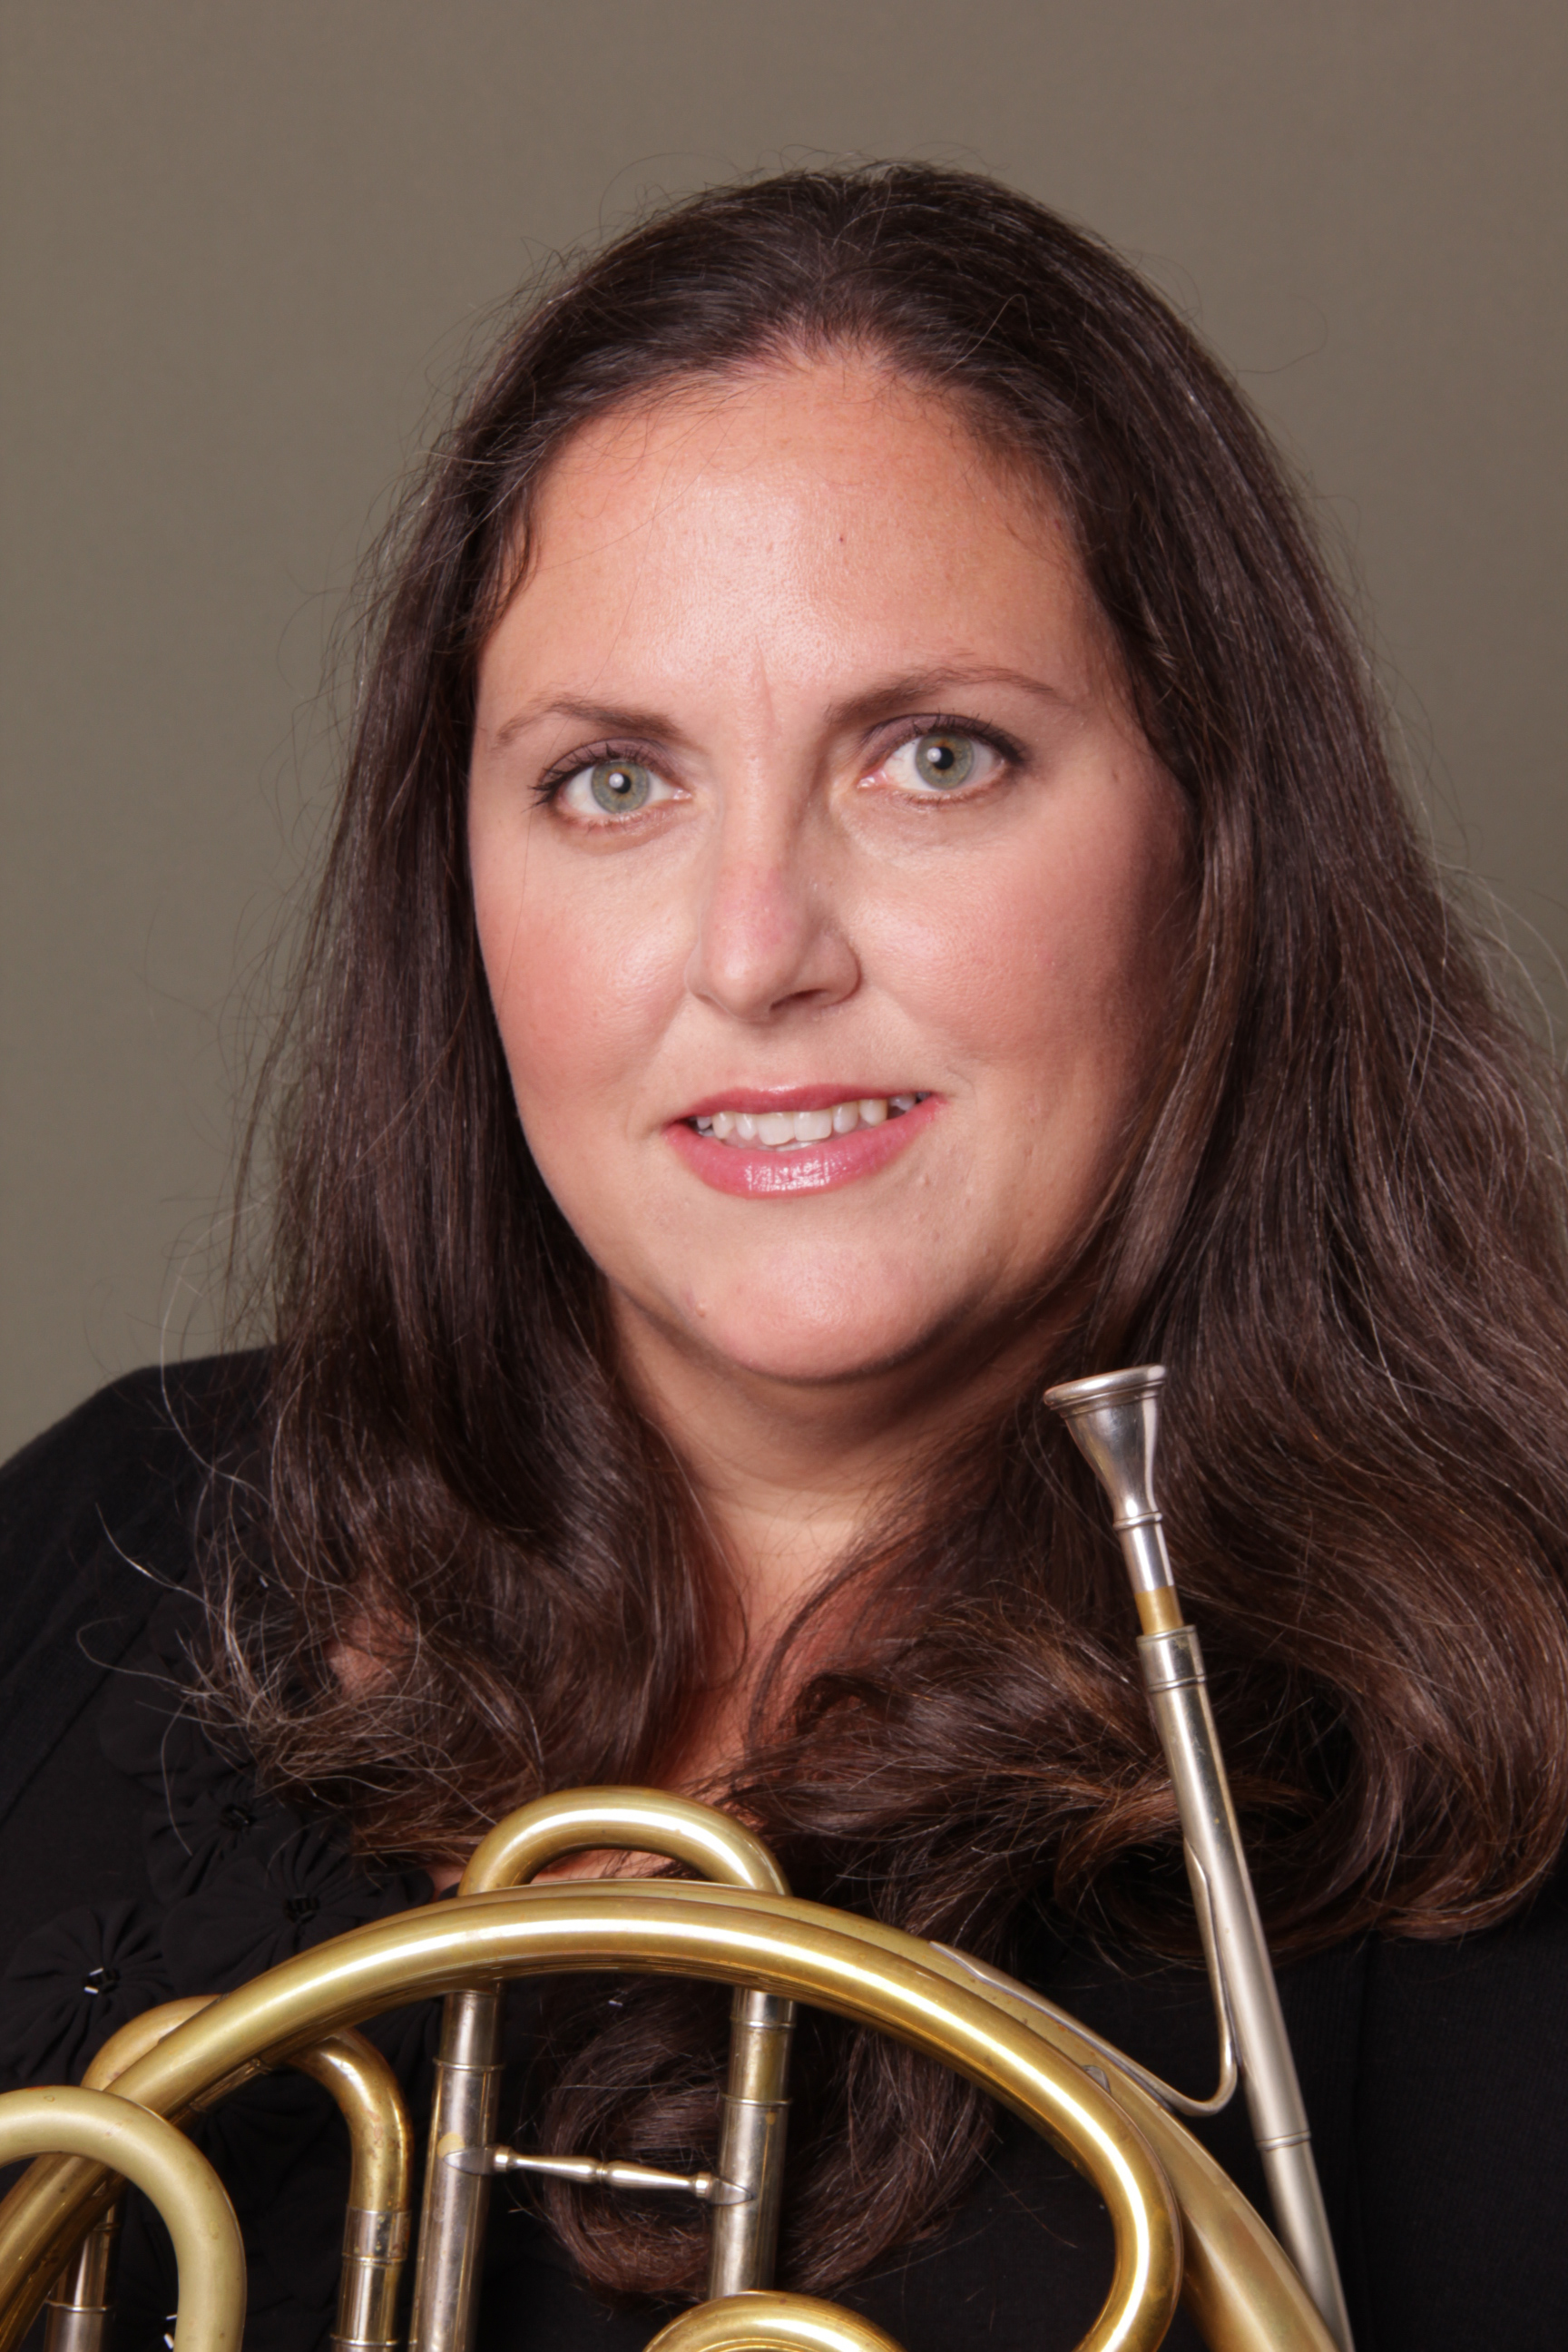 Suzanne Feinstein, french horn